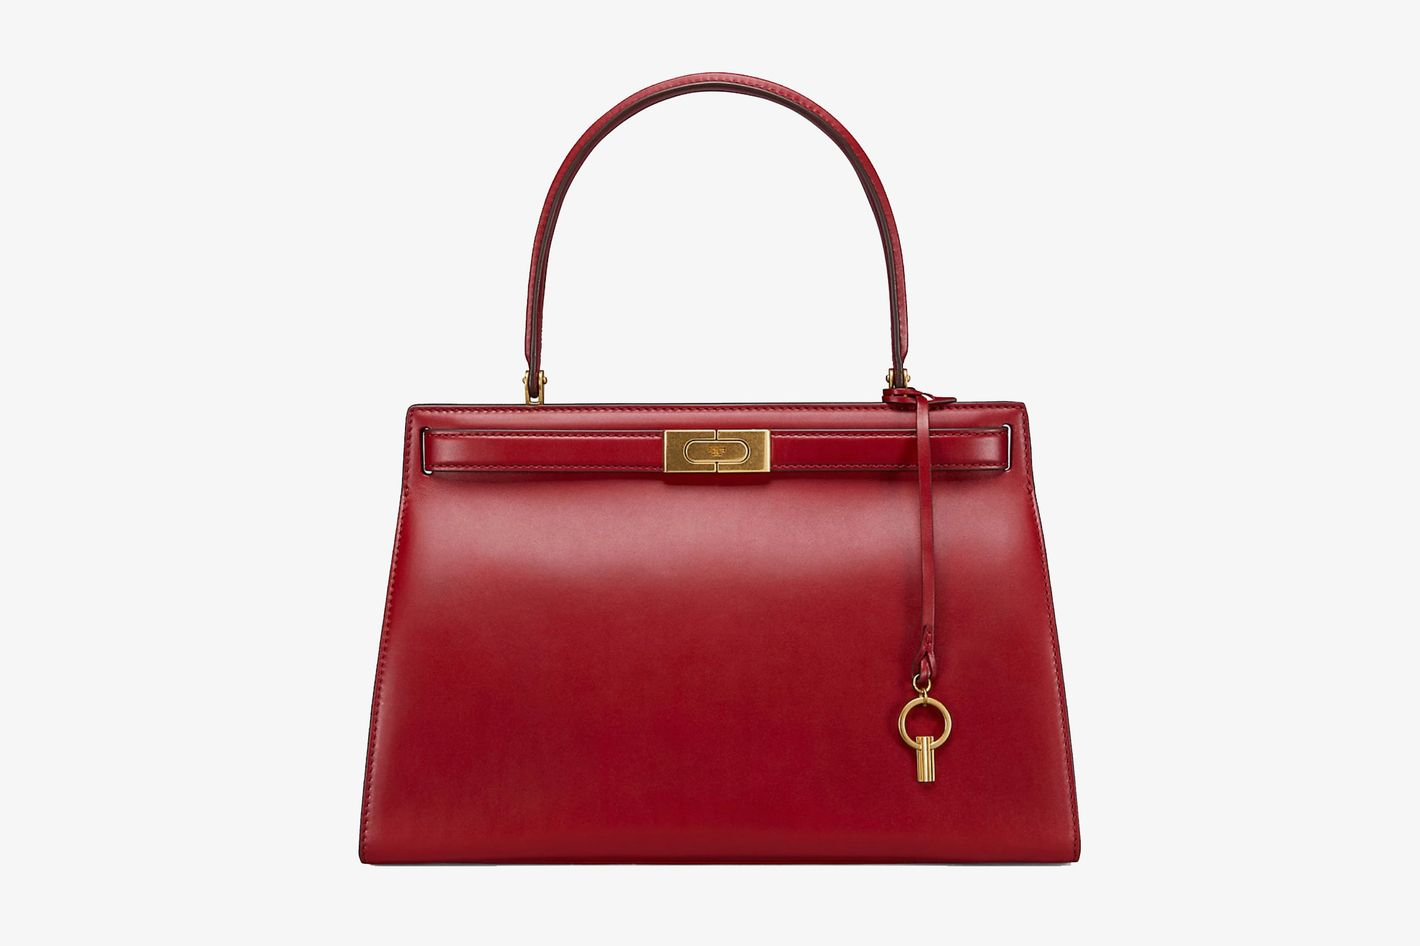 f4077ec75a32 The 14 Best Luxury Bags to Buy This Fall